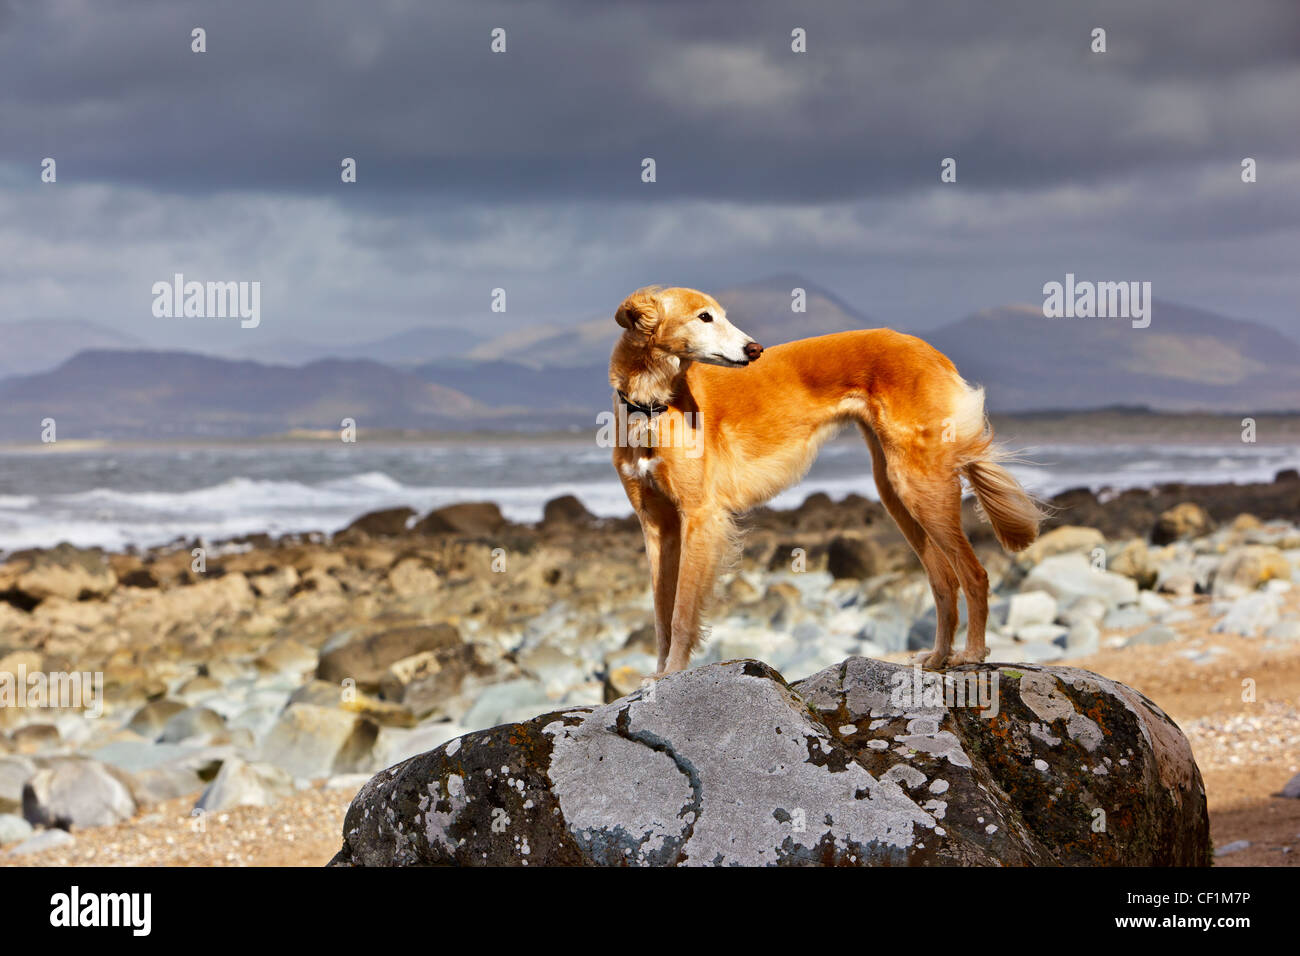 A Saluki cross Lurcher standing on a large rock on the beach at Llanfair. - Stock Image